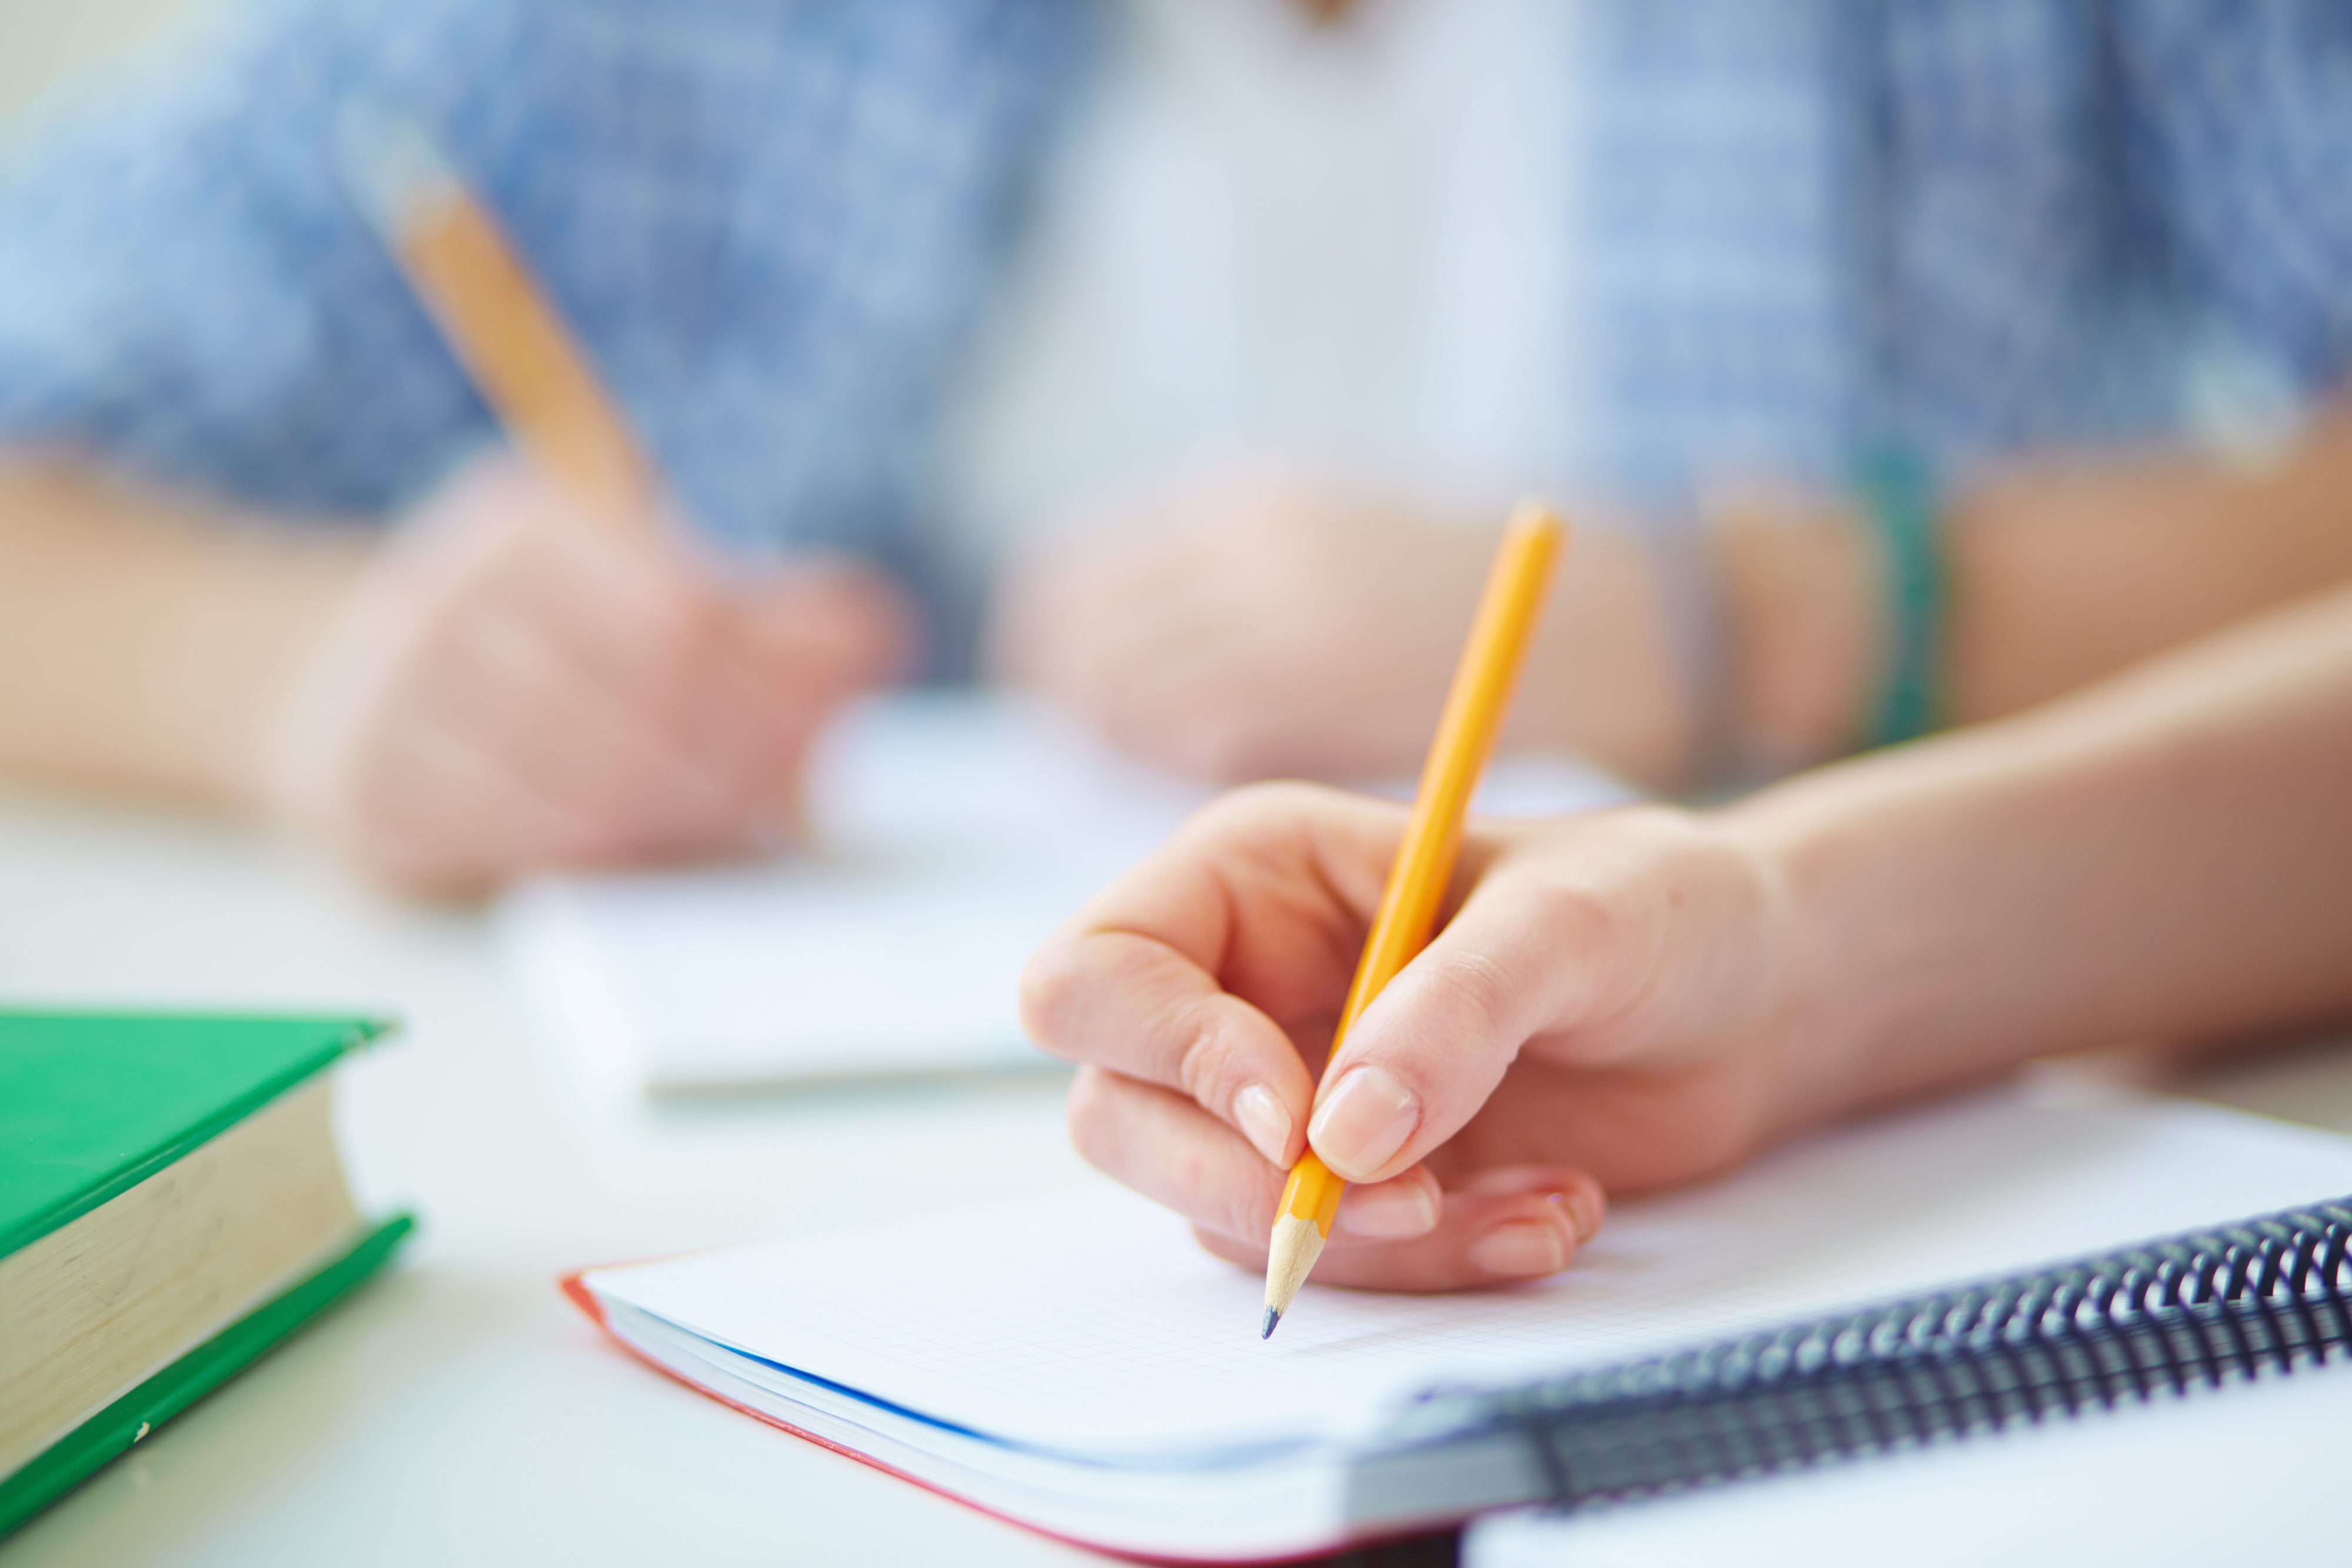 student writing with pencil in a notebook